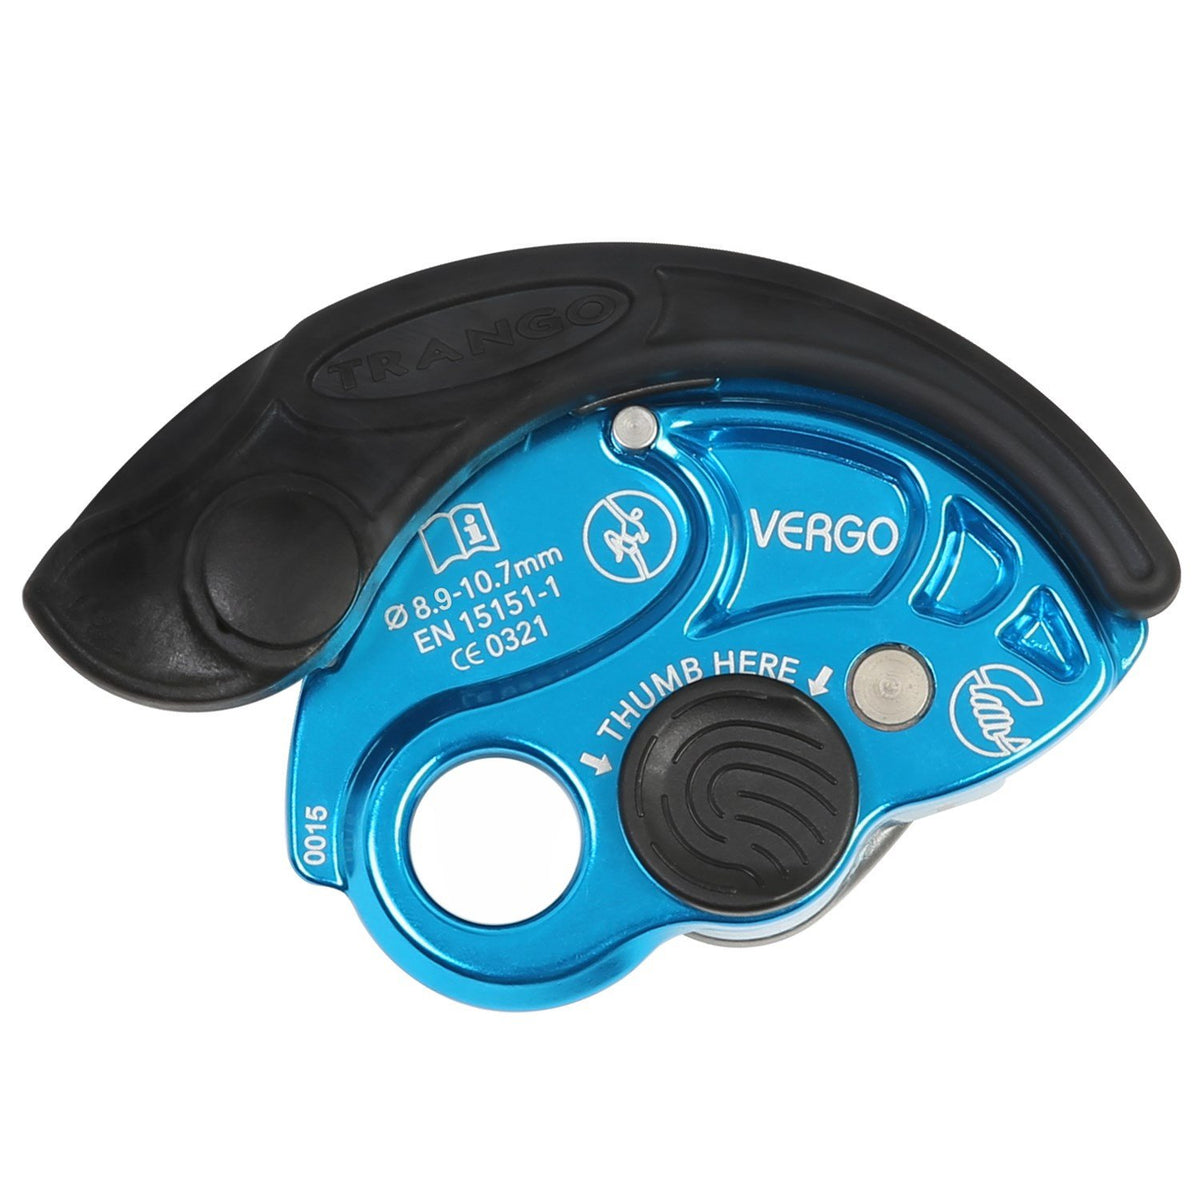 Trango Vergo climbing belay device, in Blue colour